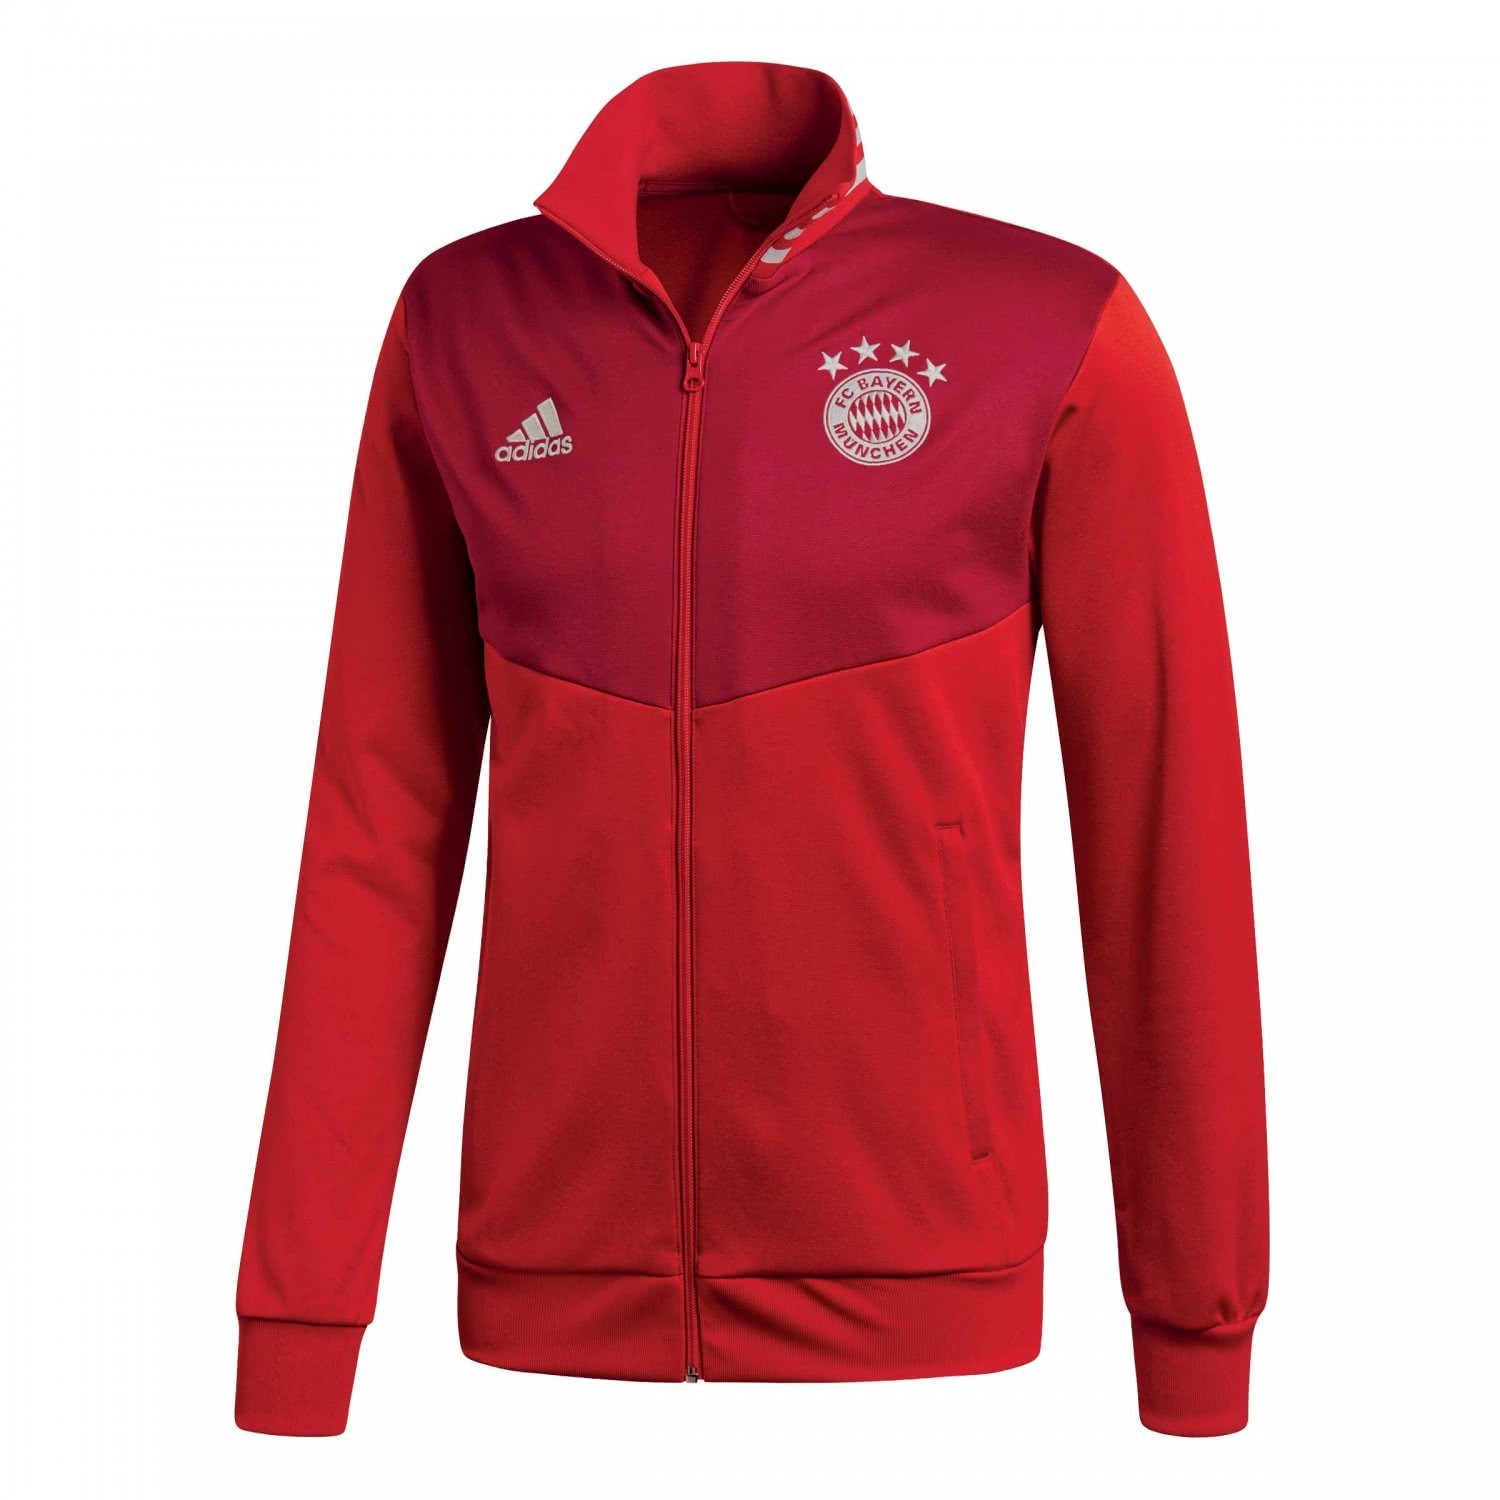 Amazon.com : adidas 2018-2019 Bayern Munich 3S Track Top (Red) : Sports & Outdoors